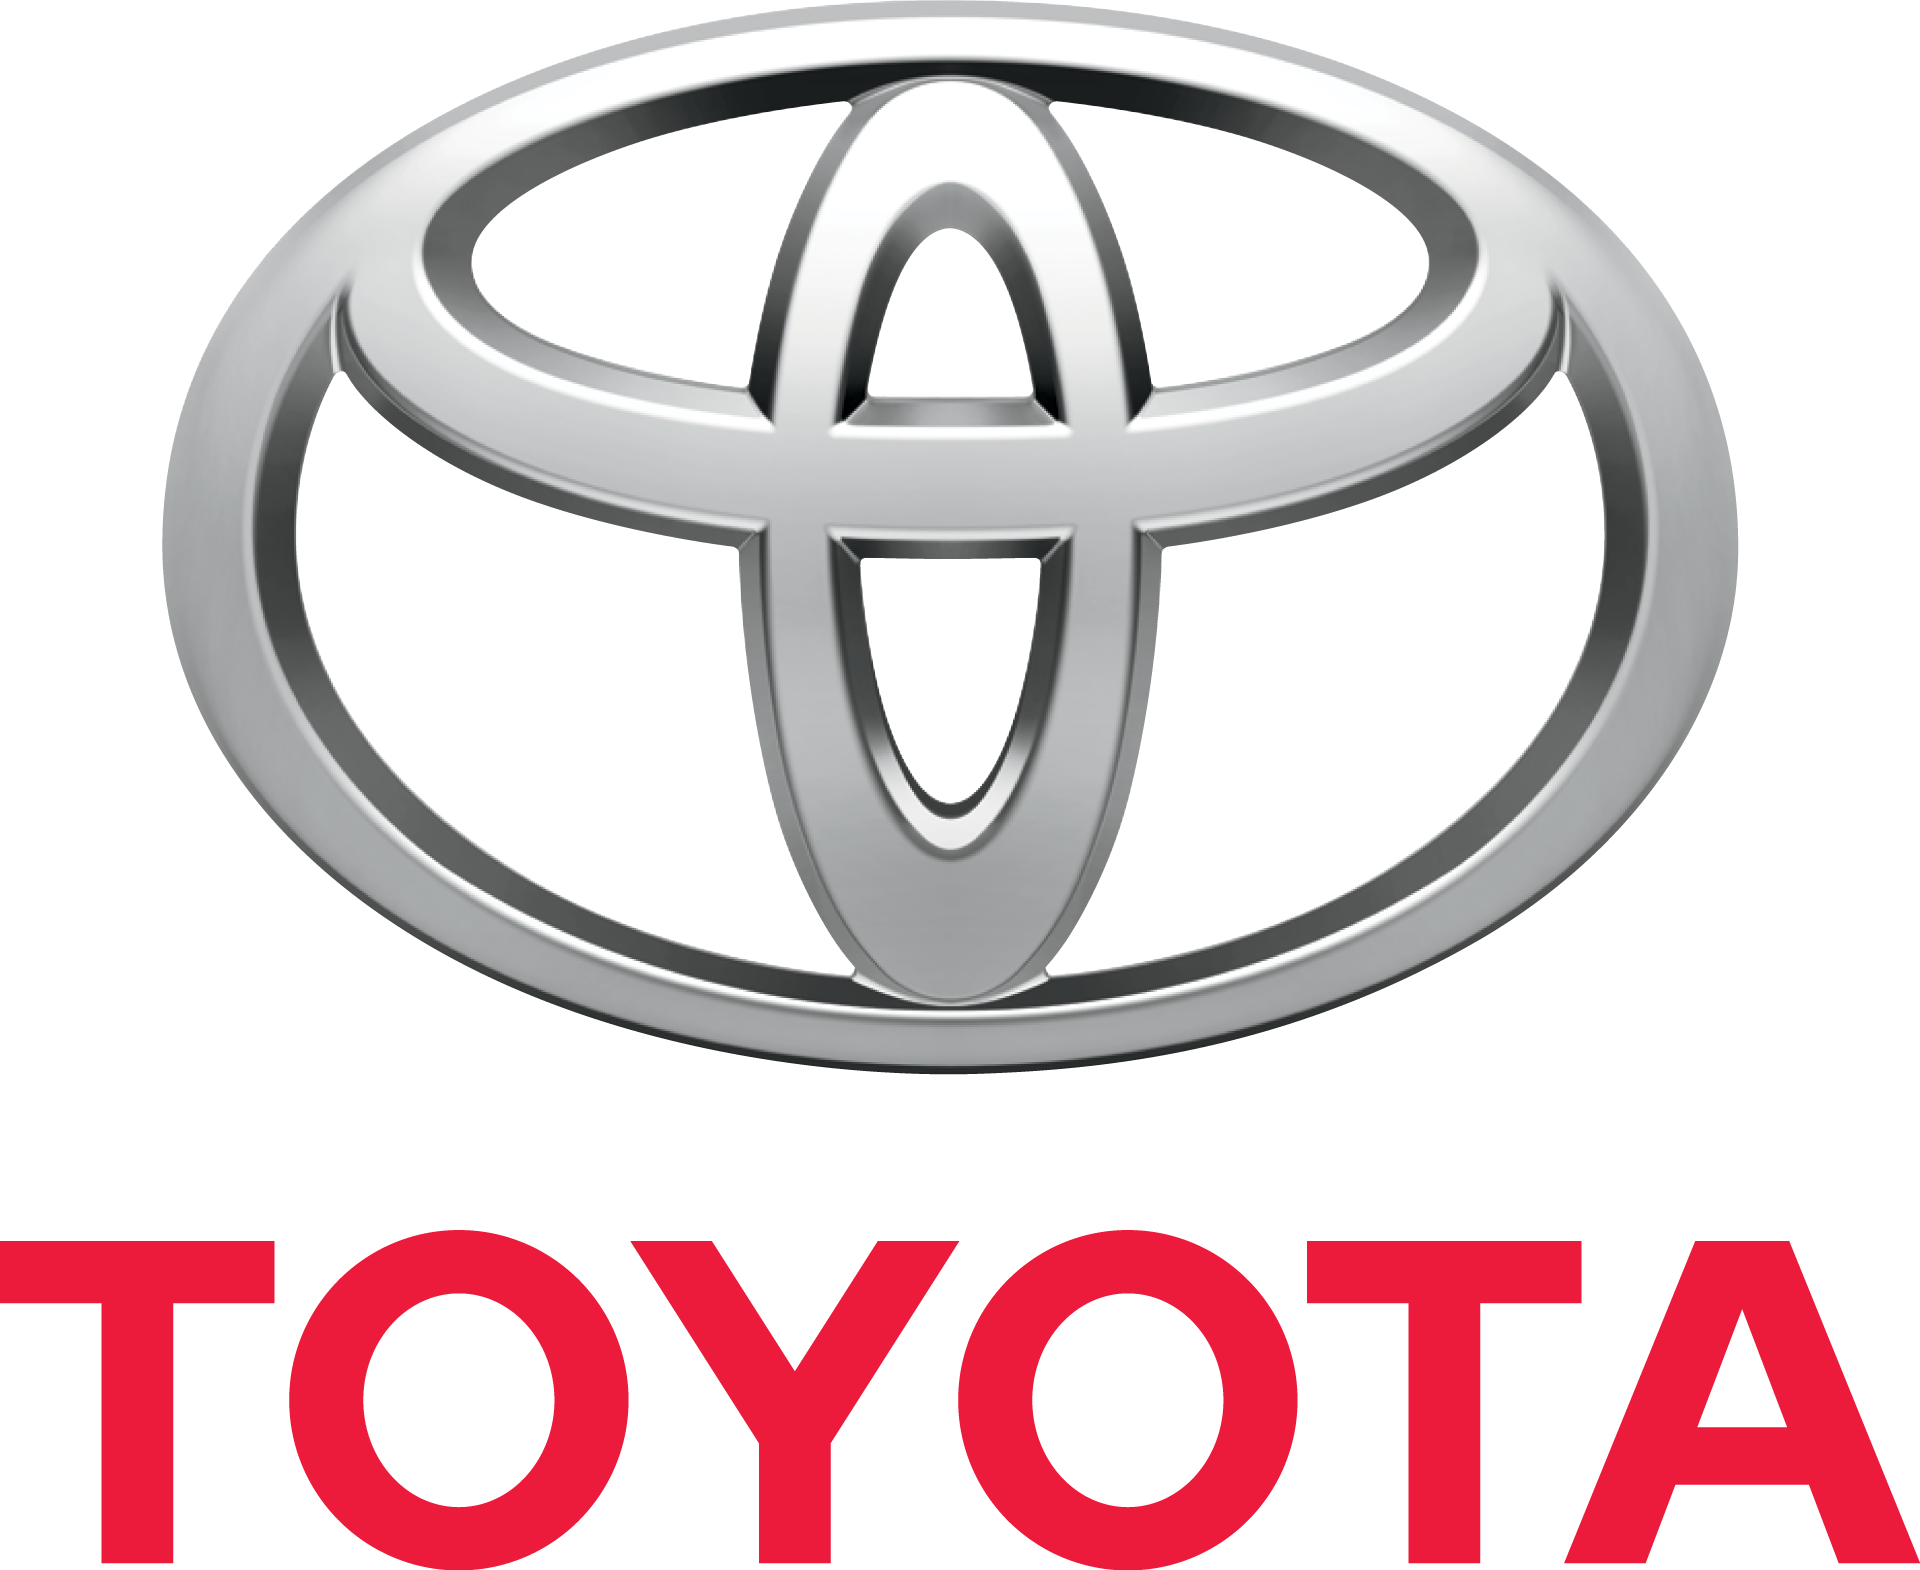 toyota logo - Google Search - Toyota Logo Vector PNG